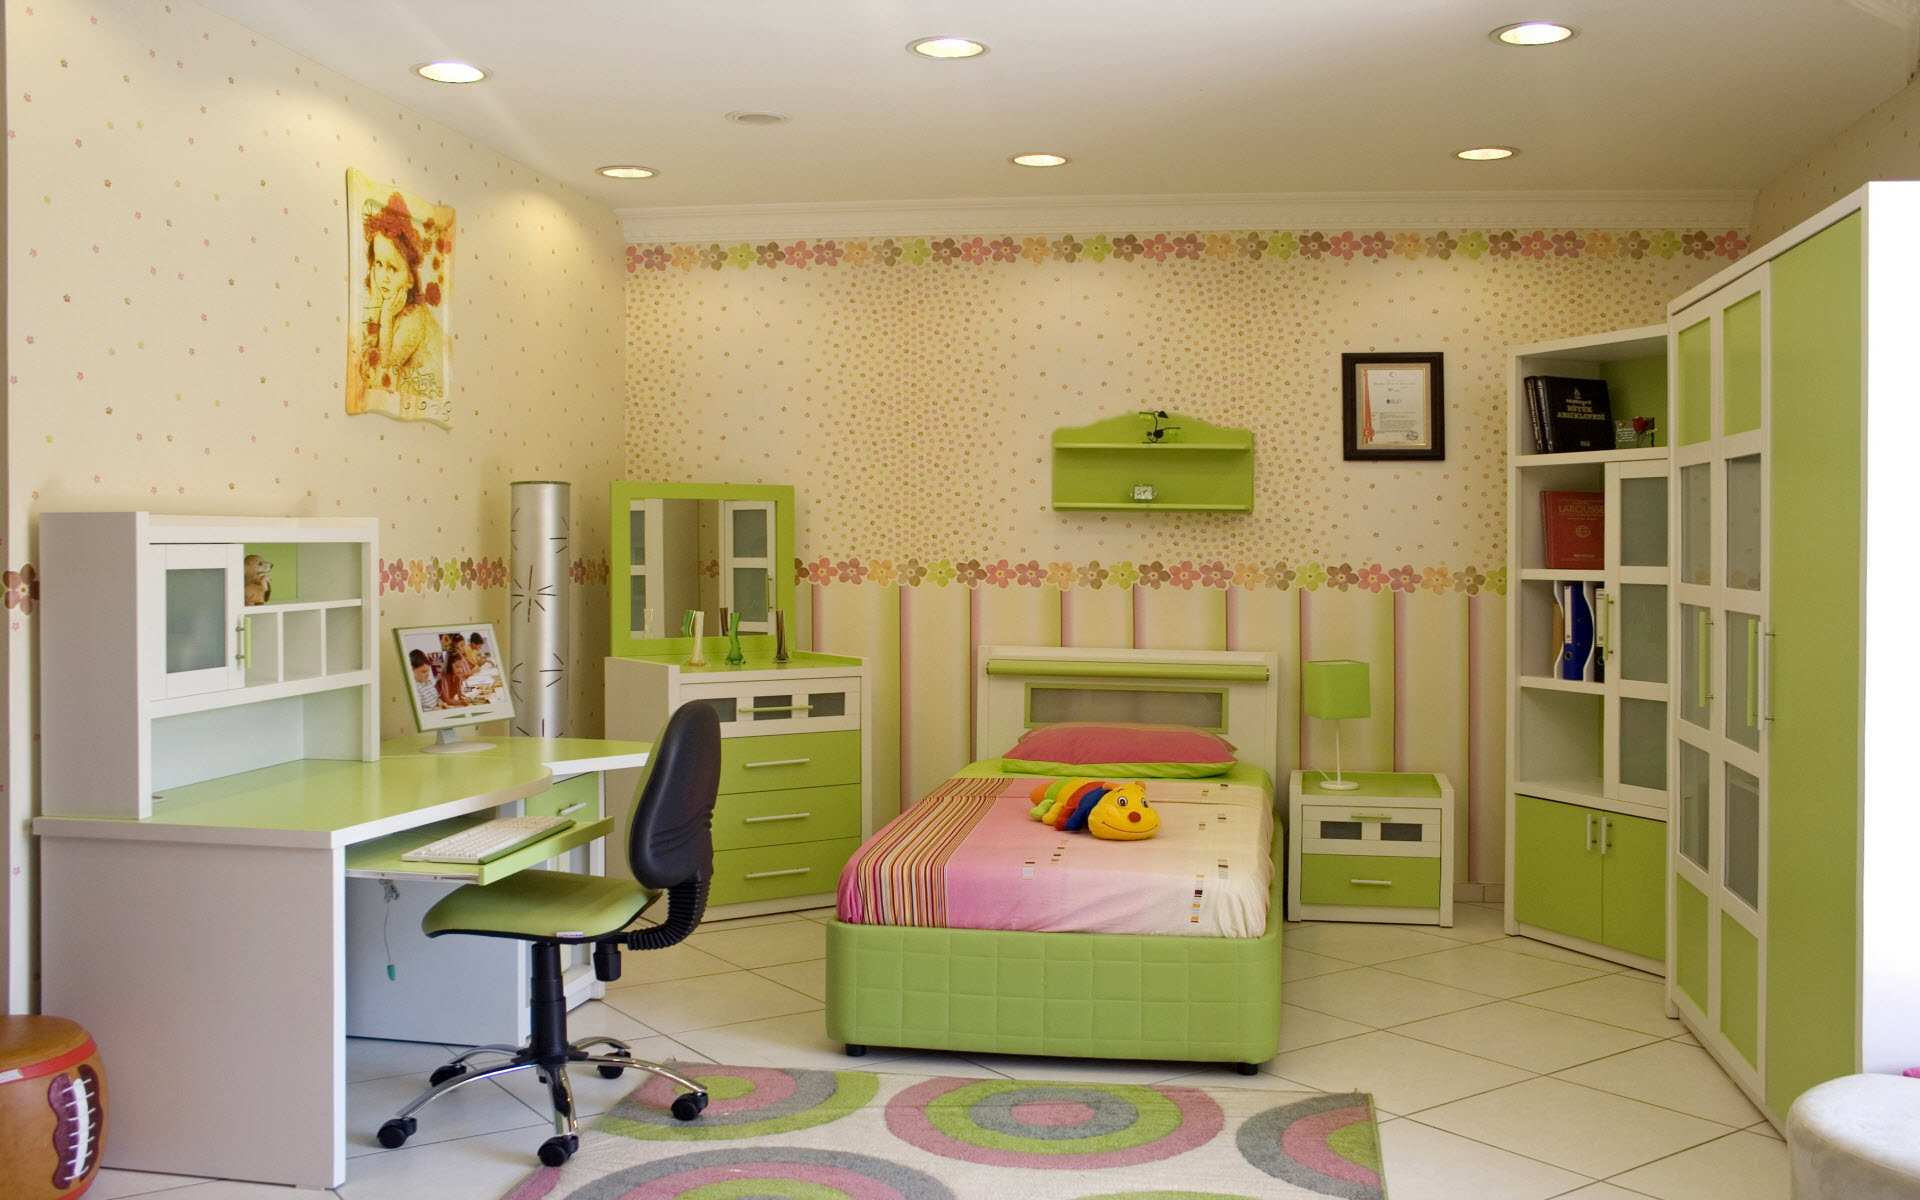 Kids room design apartments i like blog - Best home interior designs ...